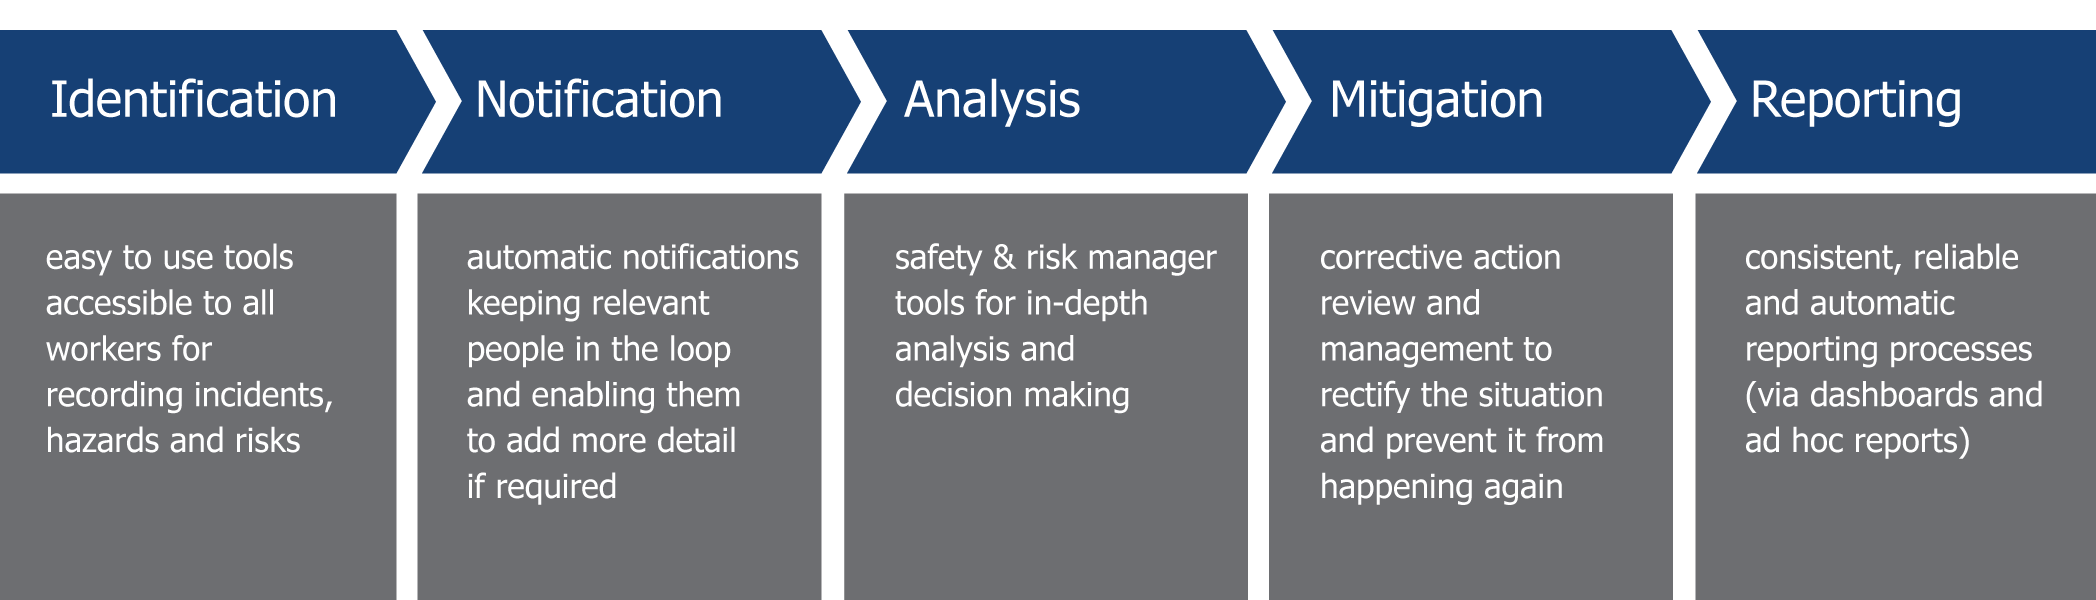 salvus safety_management_diagram-comopsnavy